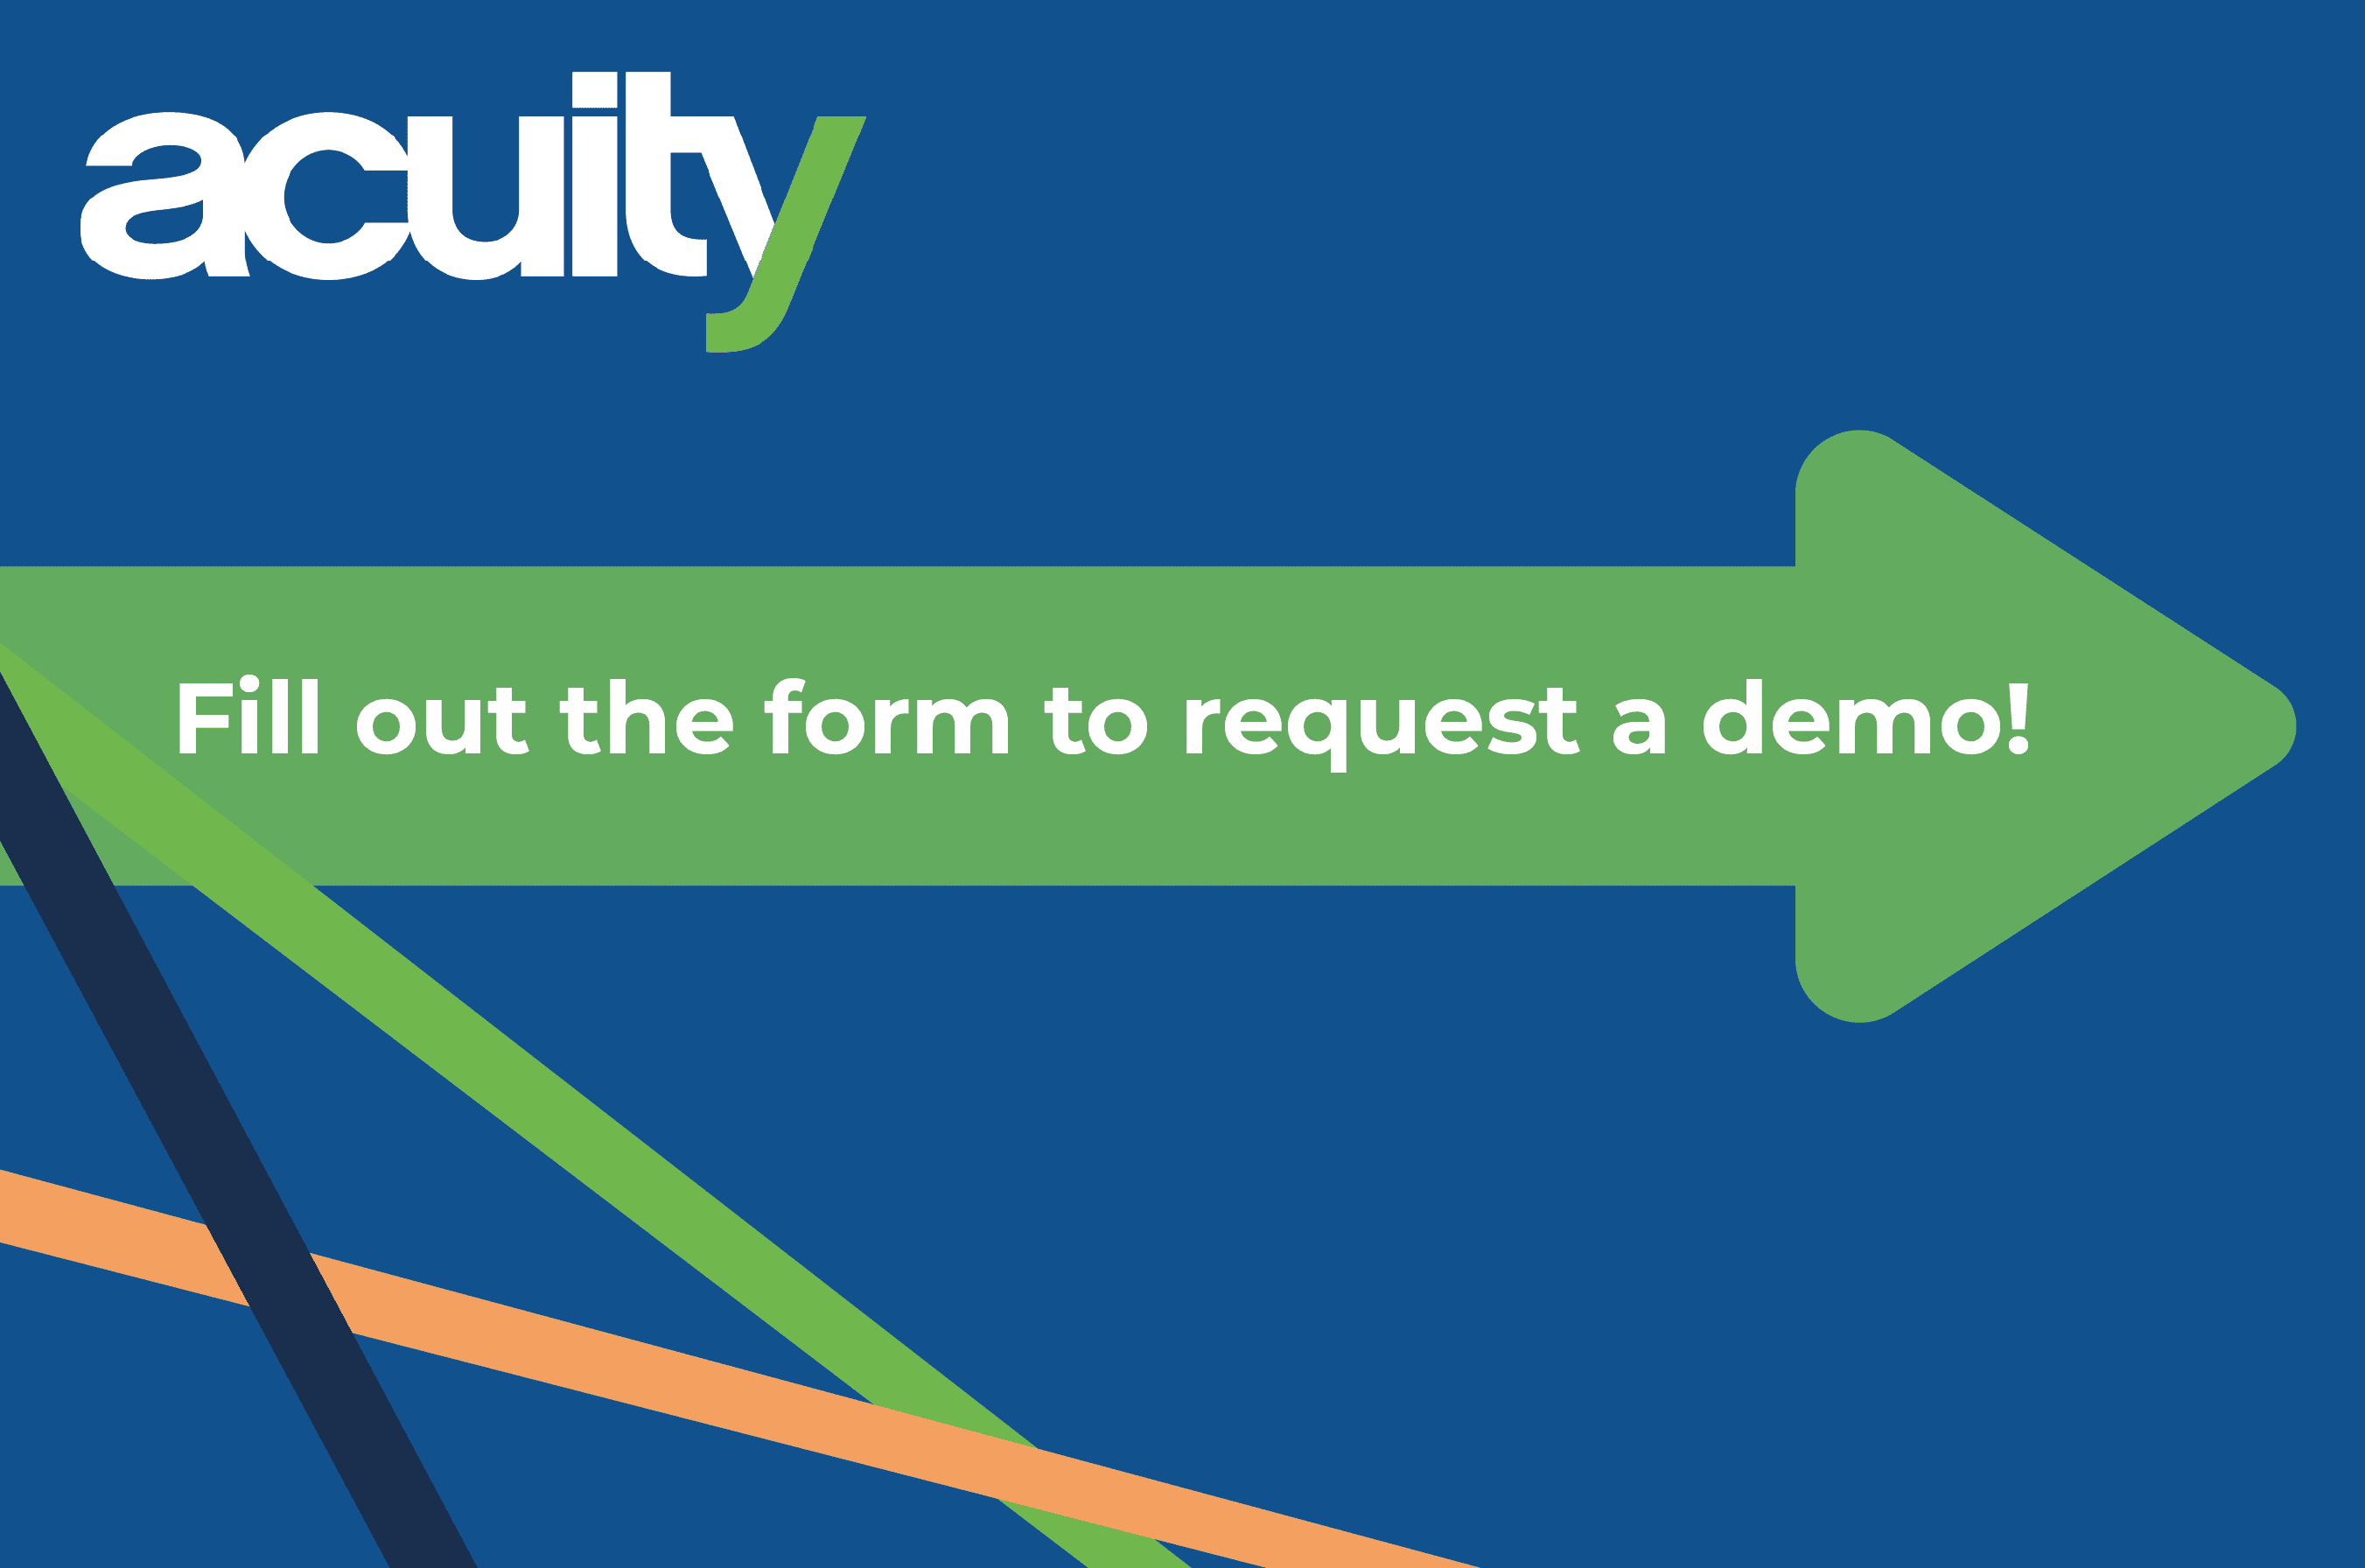 fill out the form to request a product demo